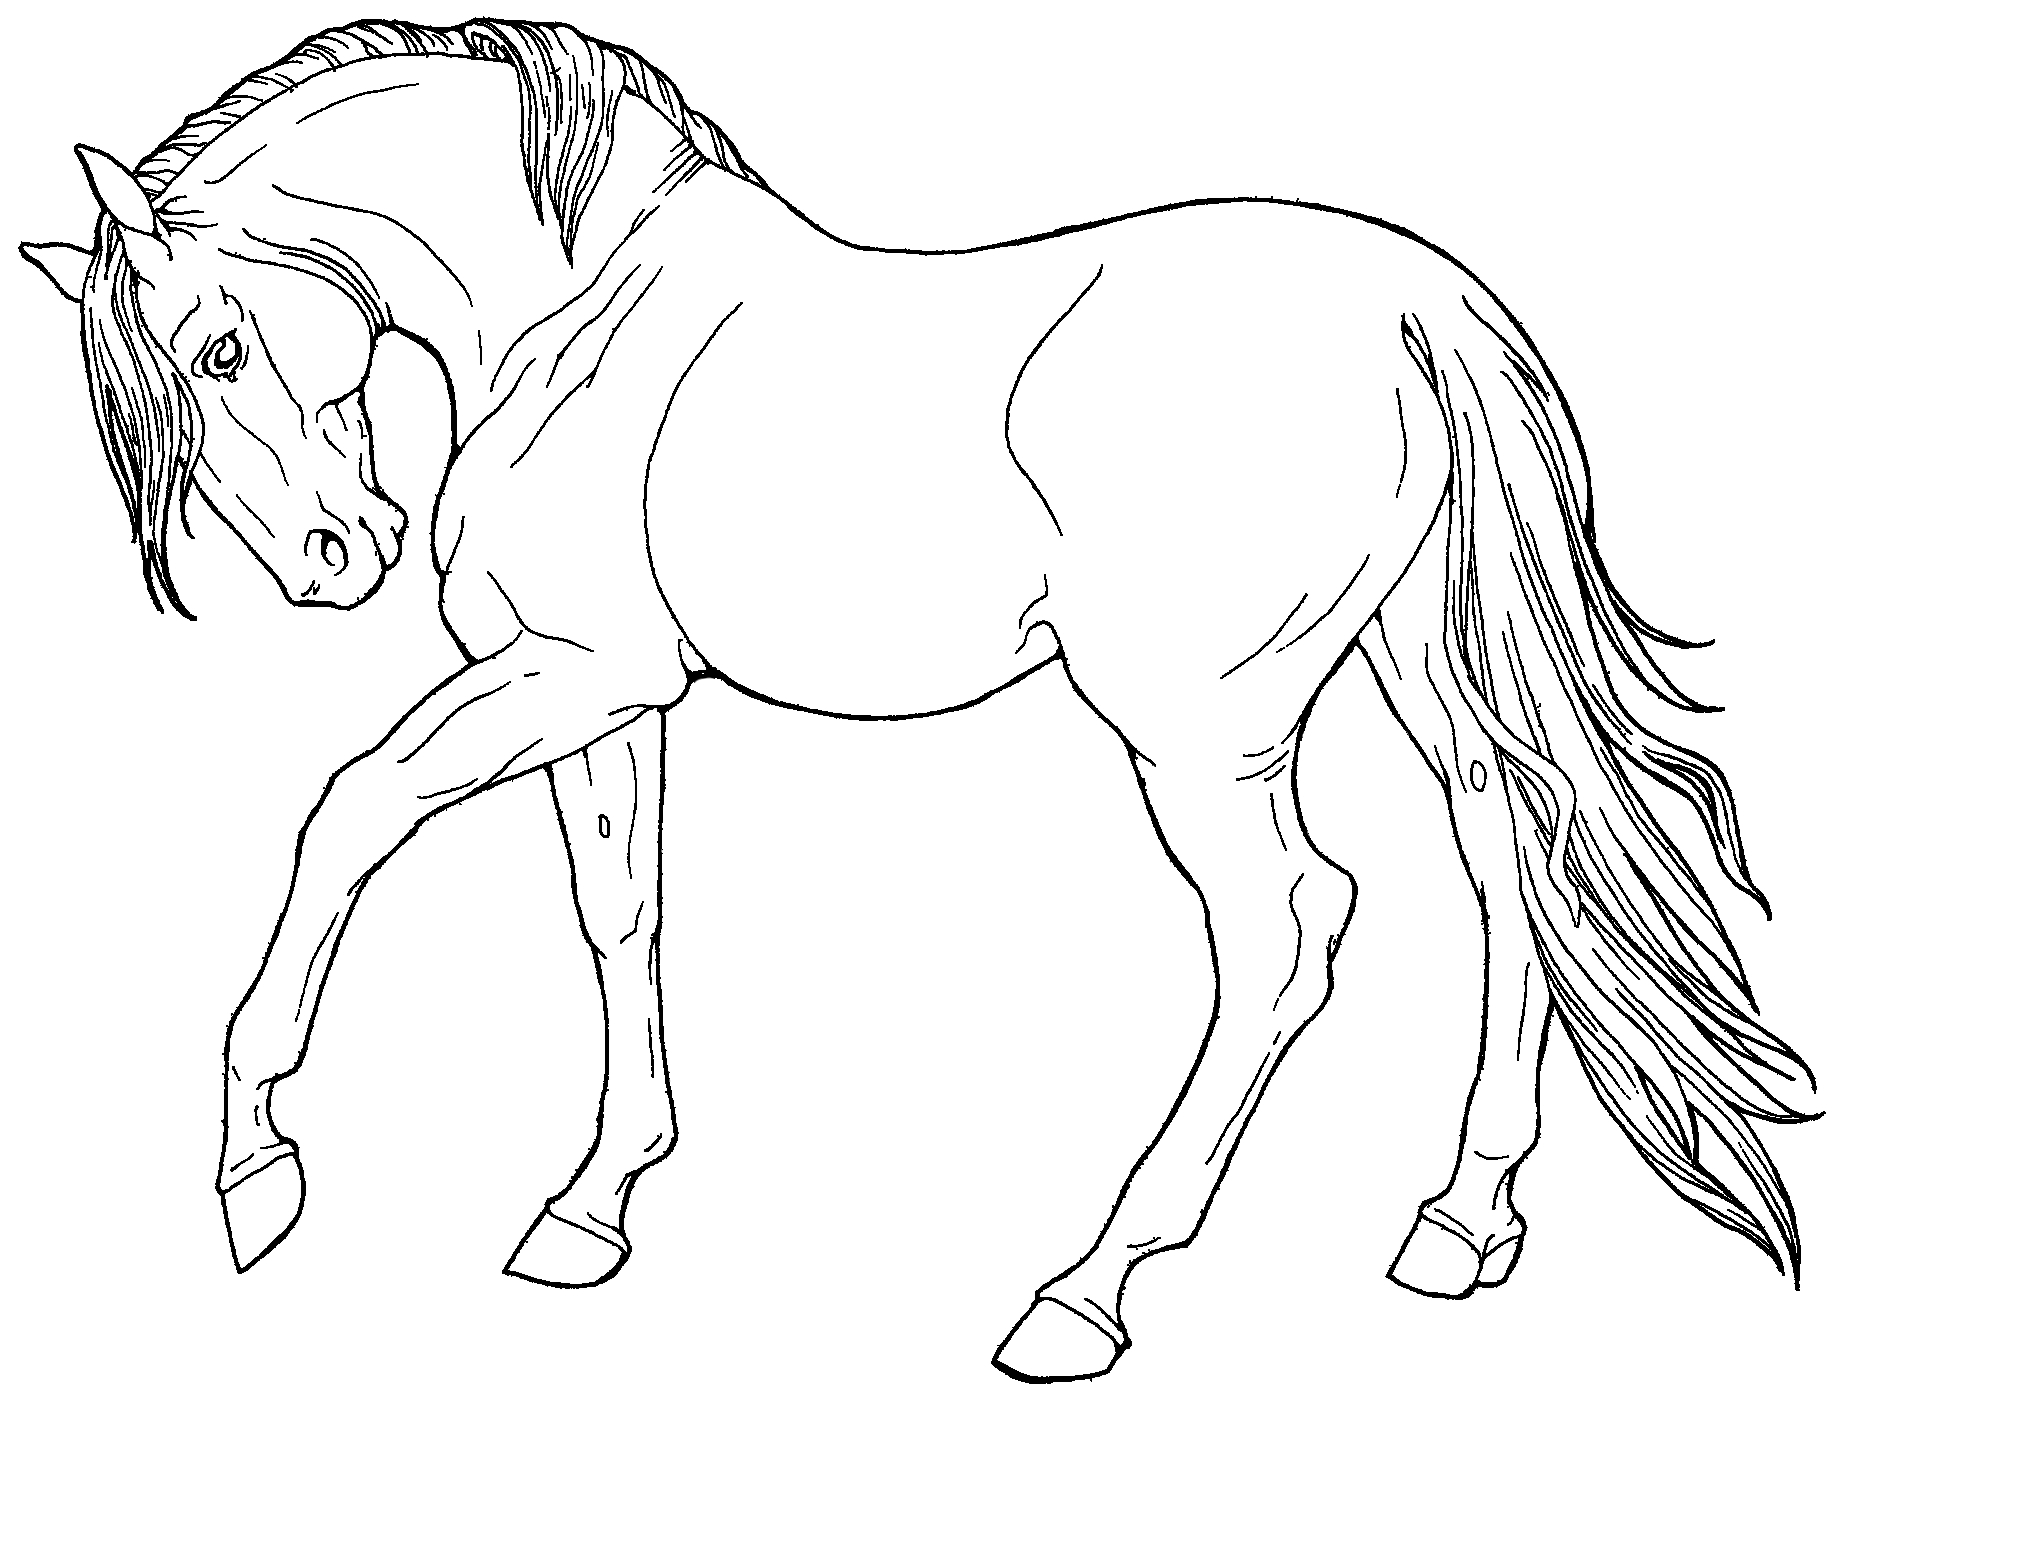 Free Line Art : Free line art fine horse by applehunter on deviantart